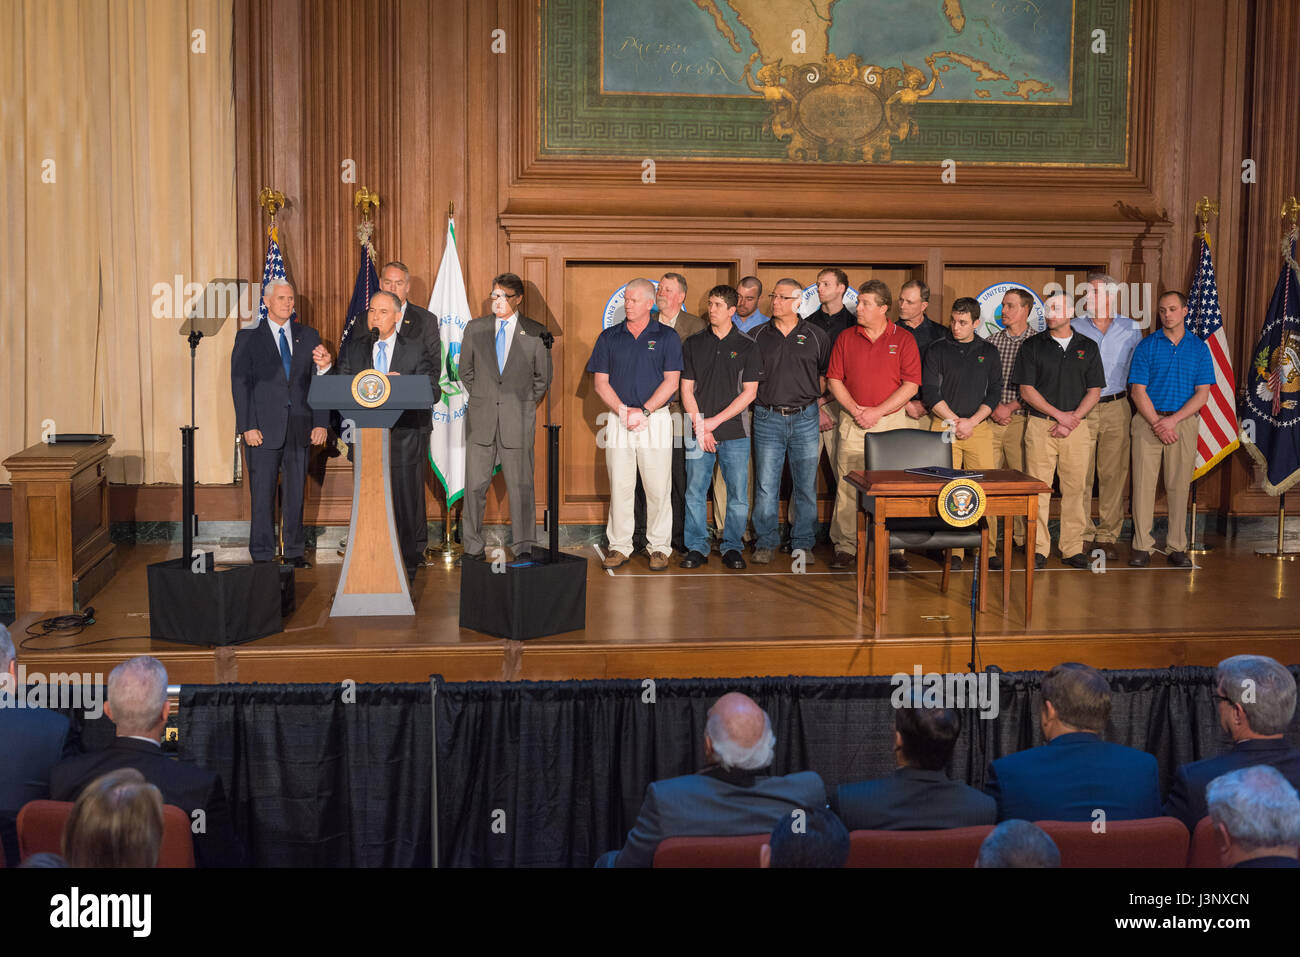 U.S. EPA Administrator Scott Pruitt Delivers Remarks Alongside Vice  President Mike Pence, Cabinet Members And Miners At A Signing Ceremony For  A Series Of ...